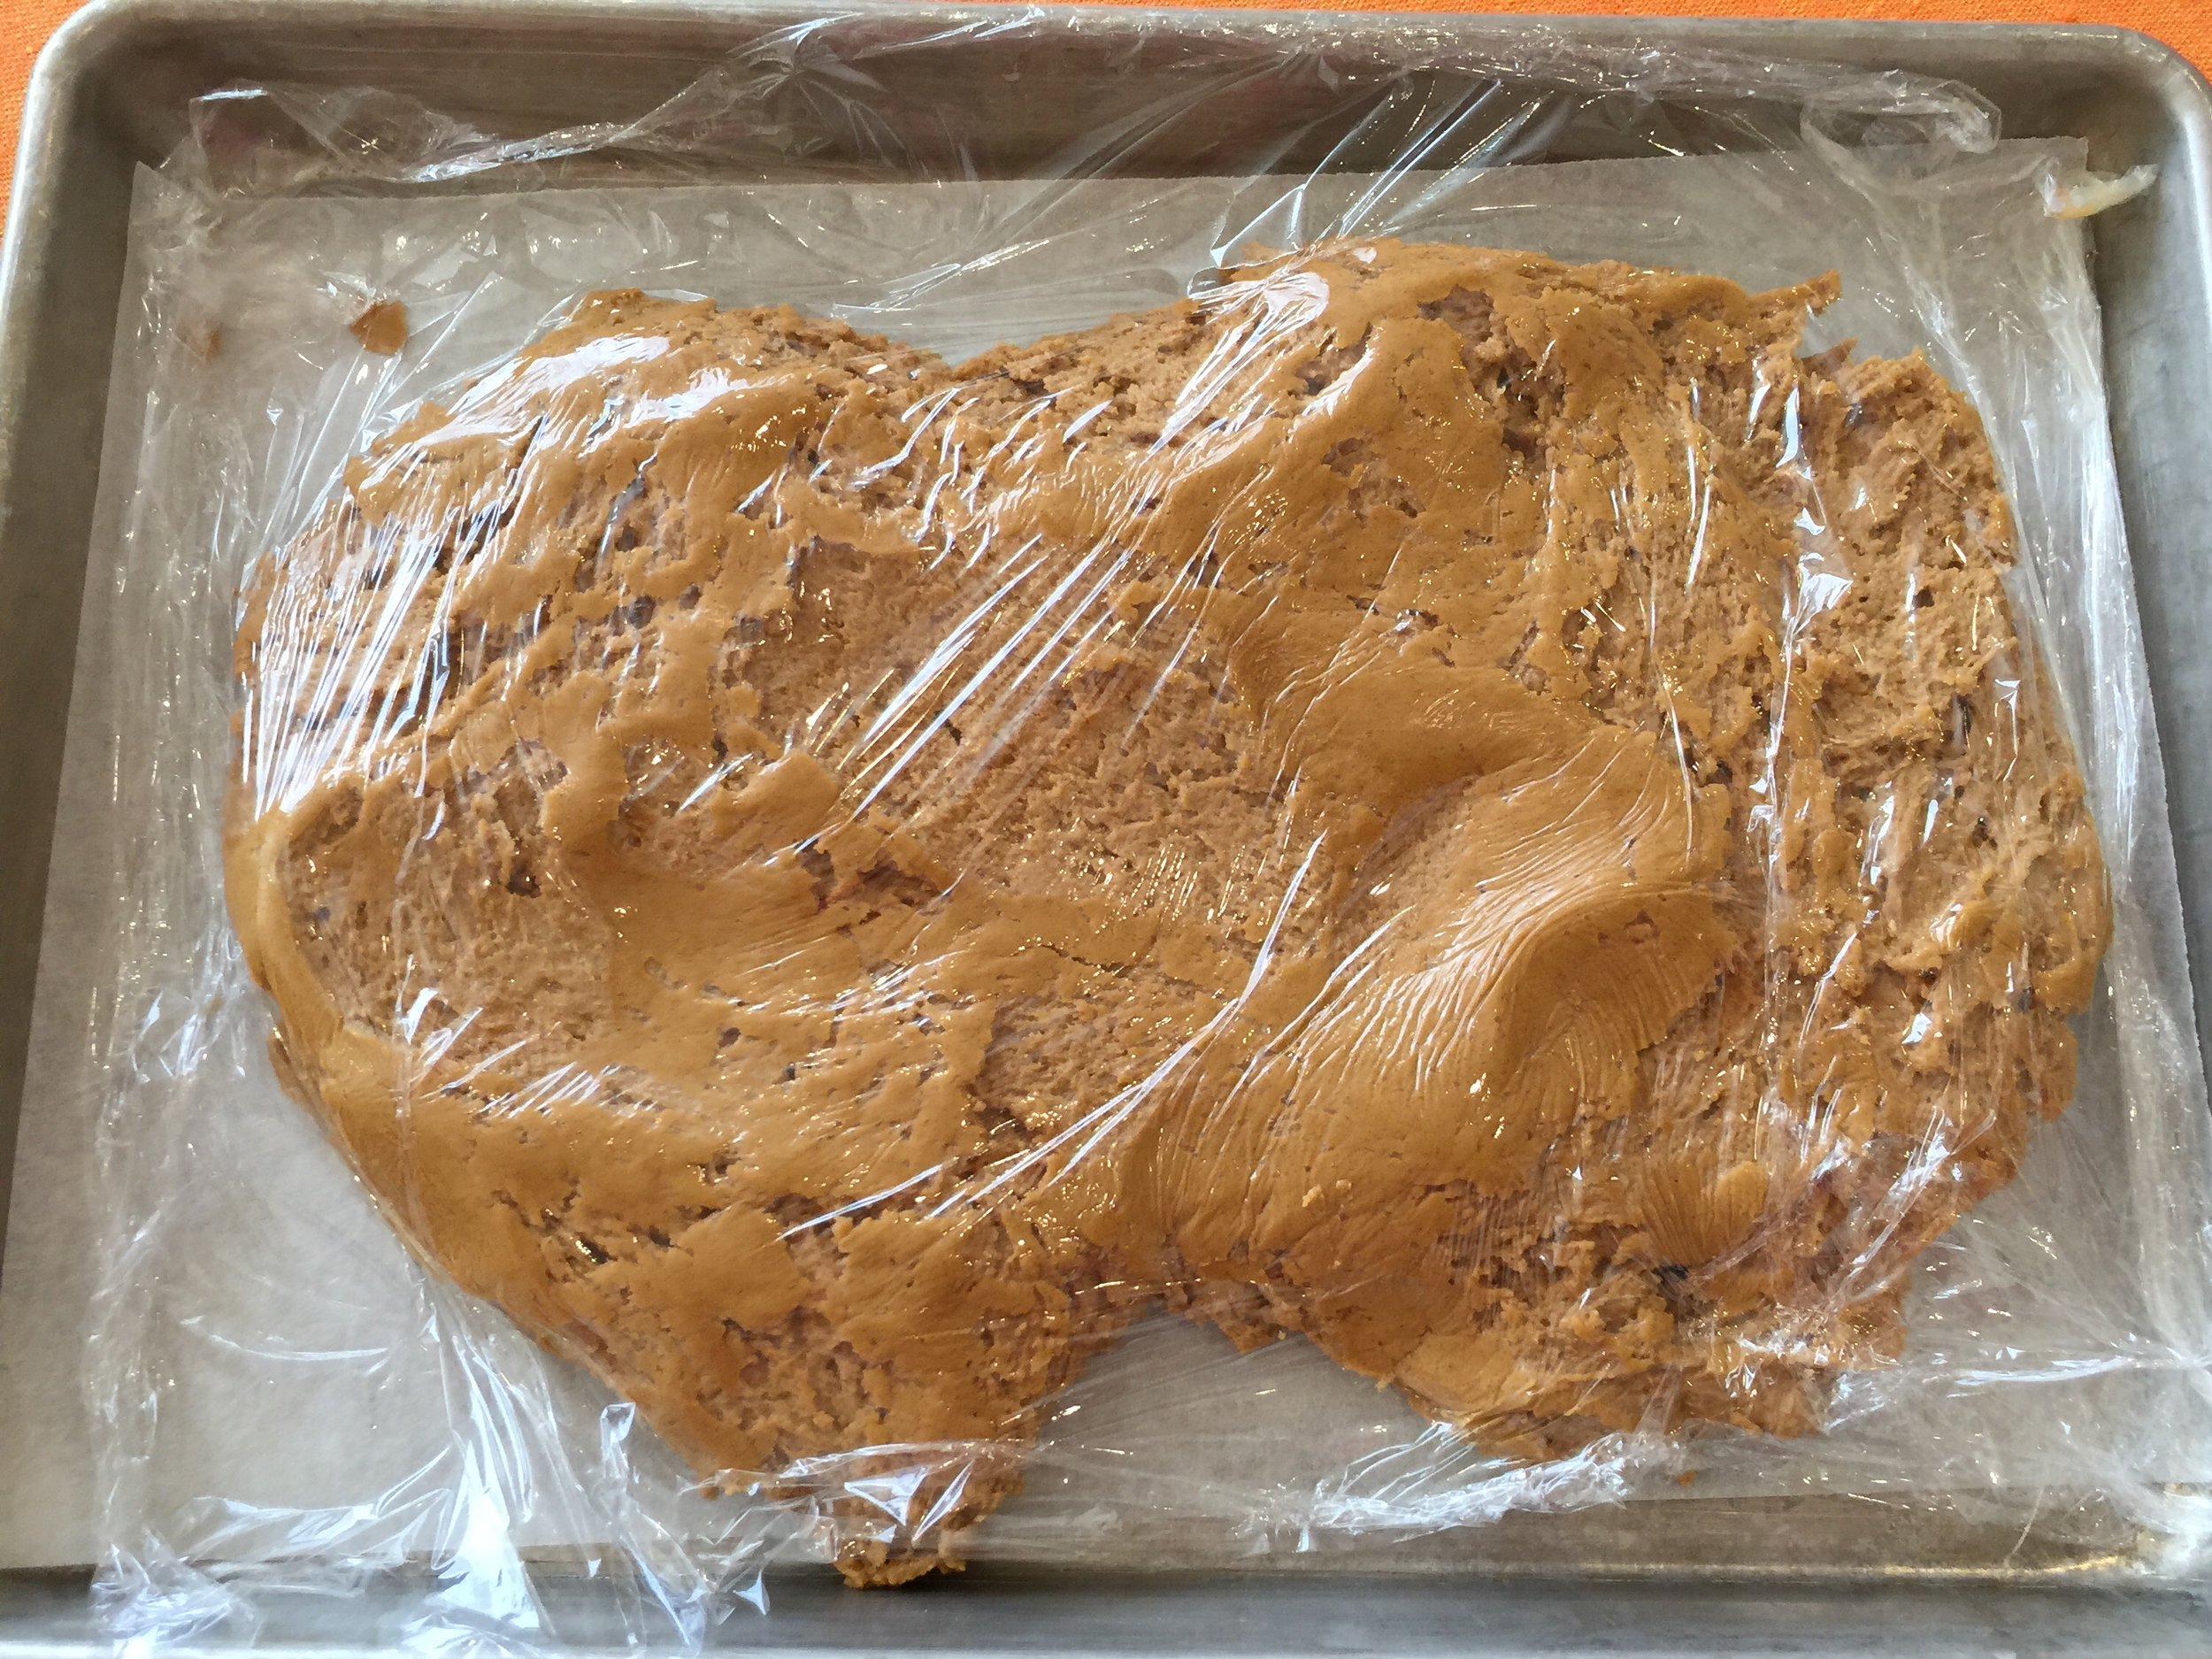 Molasses cookie dough - ready to chill